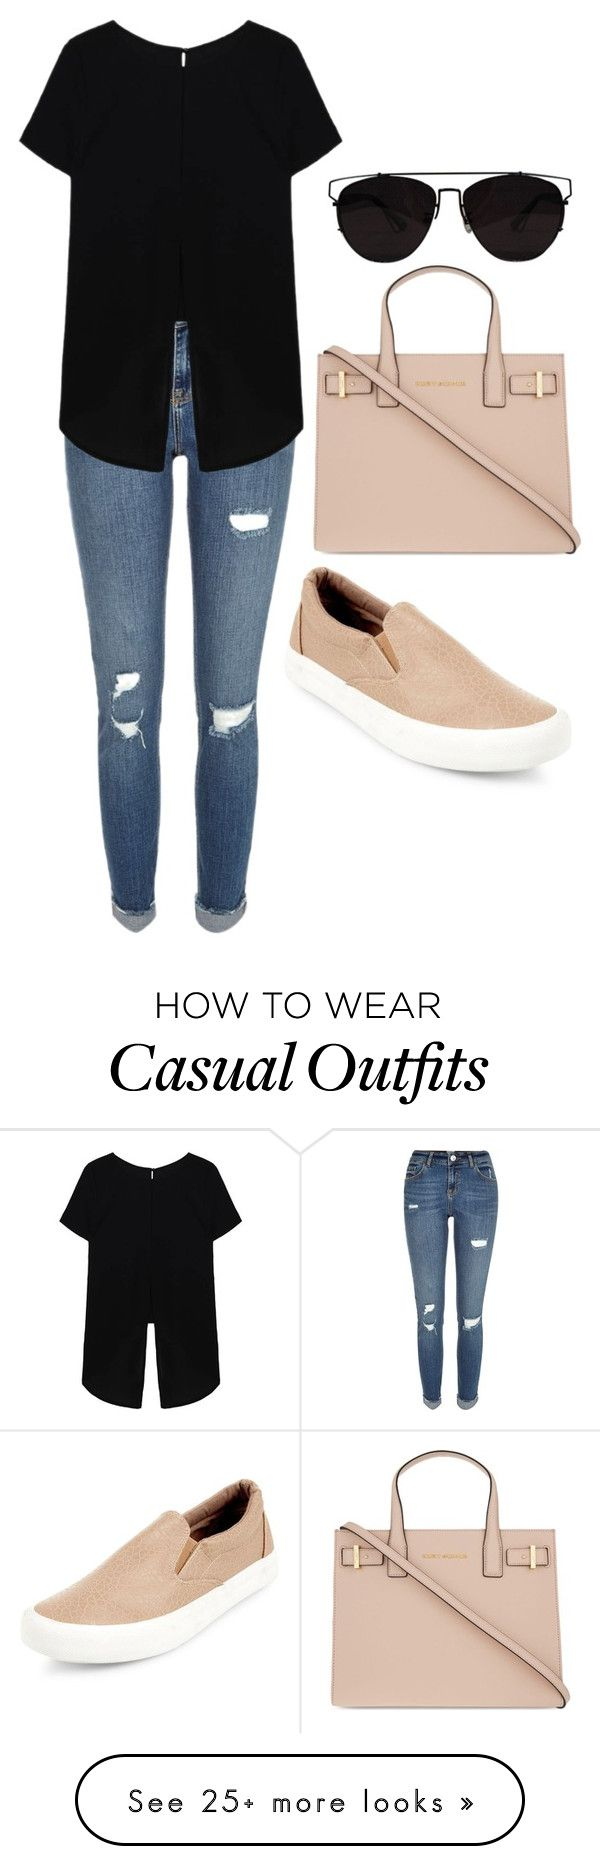 """Casual"" by heart-break on Polyvore featuring River Island, Kurt Geiger and Retrò"